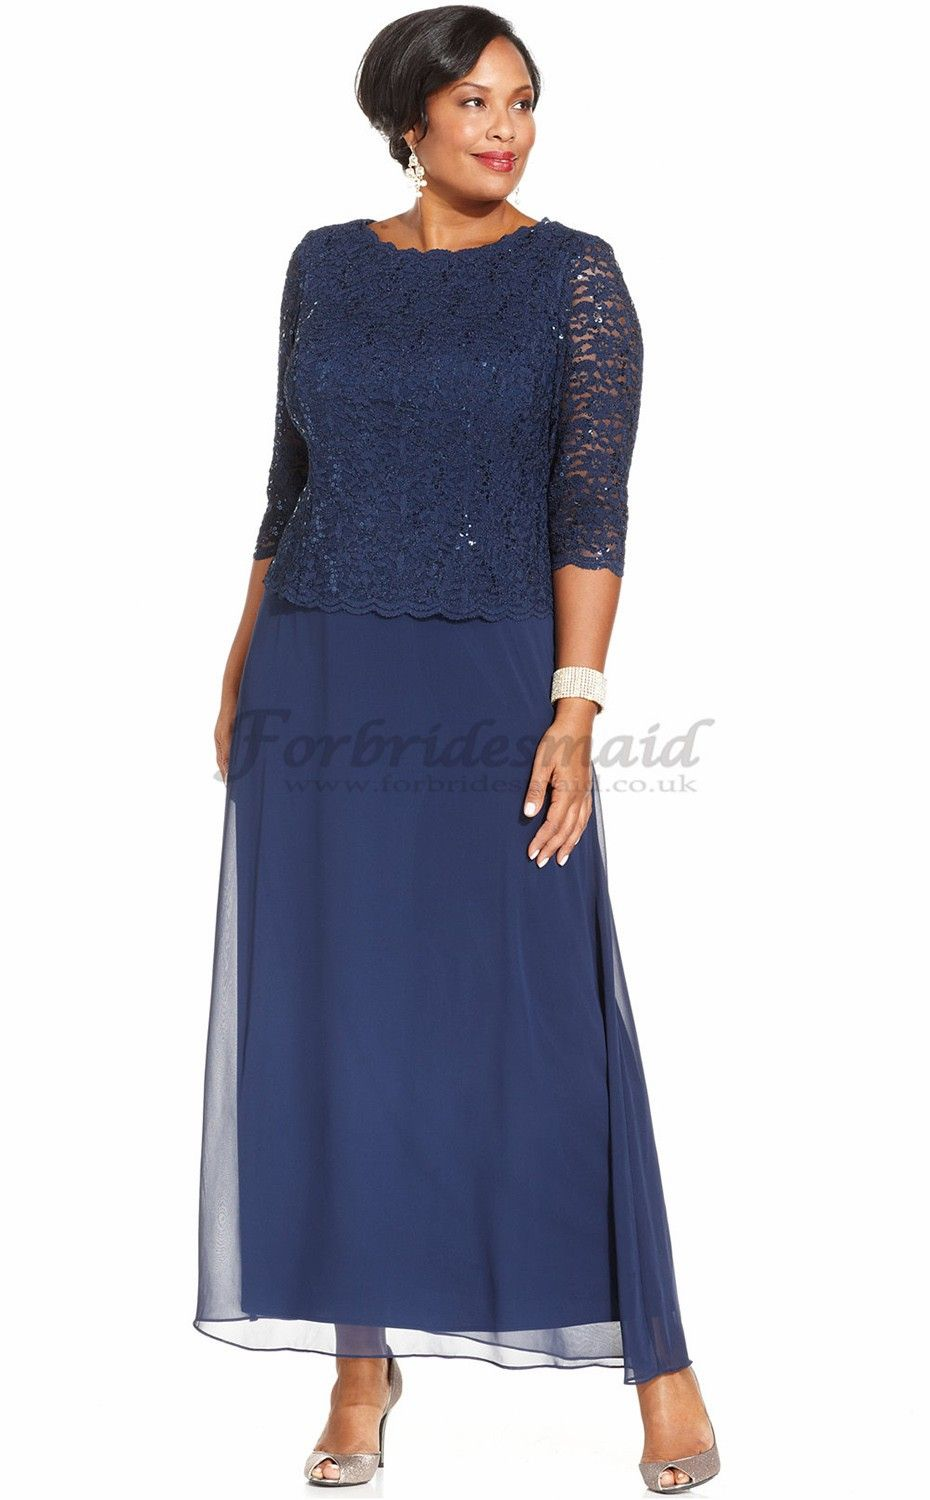 Navy blue plus size bridesmaid dresses choice image dresses new style navy ankle length chiffon lace plus size bridesmaid new style navy ankle length chiffon ombrellifo Images